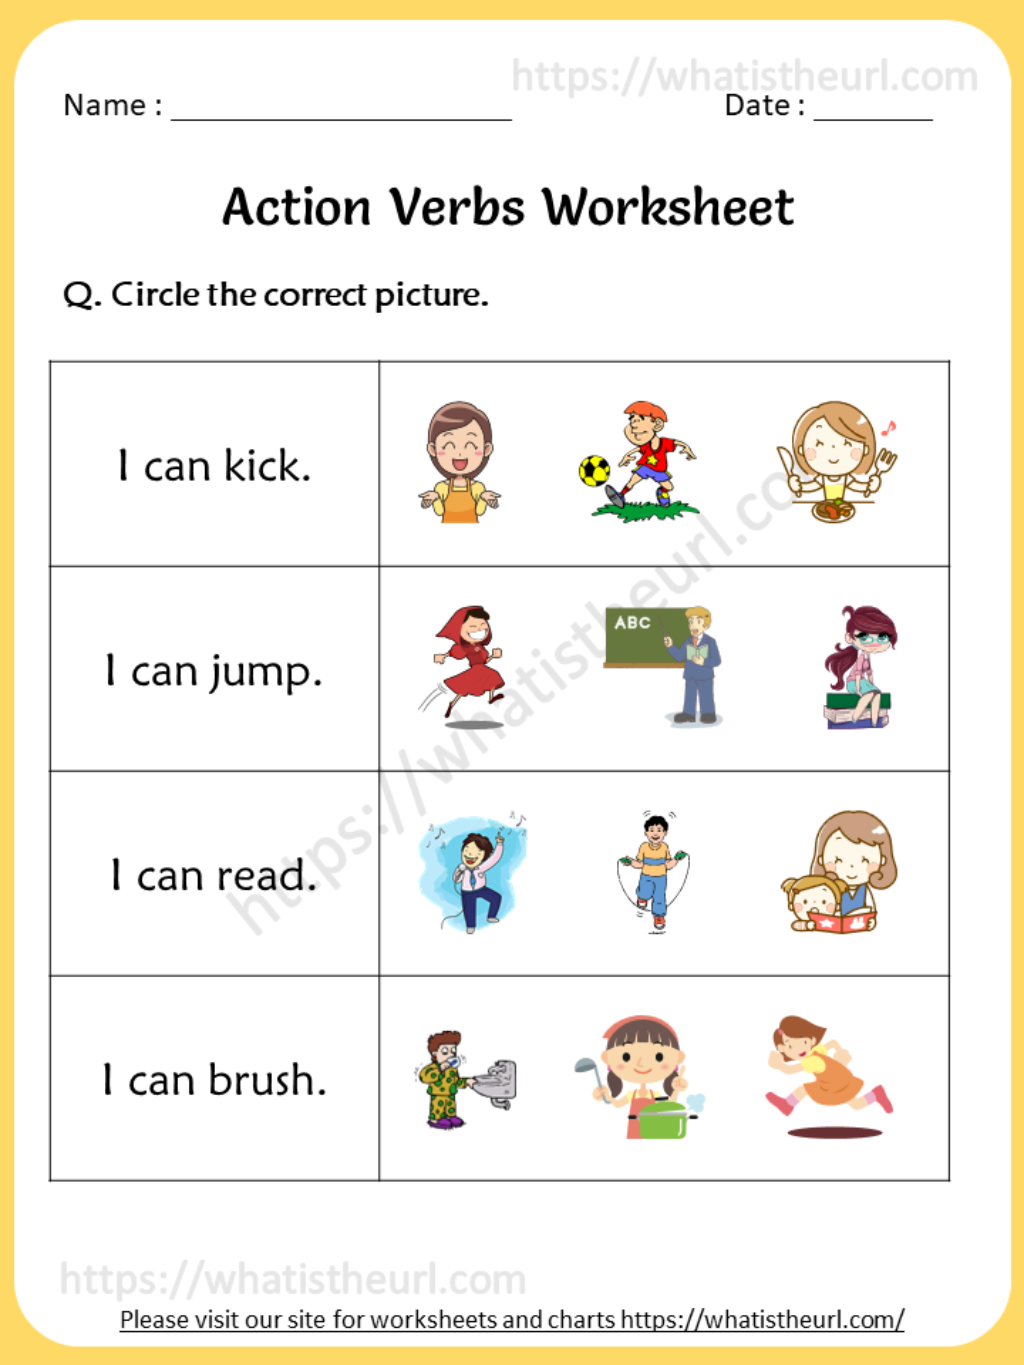 Action Verbs Worksheet For 1st Grade Your Home Teacher